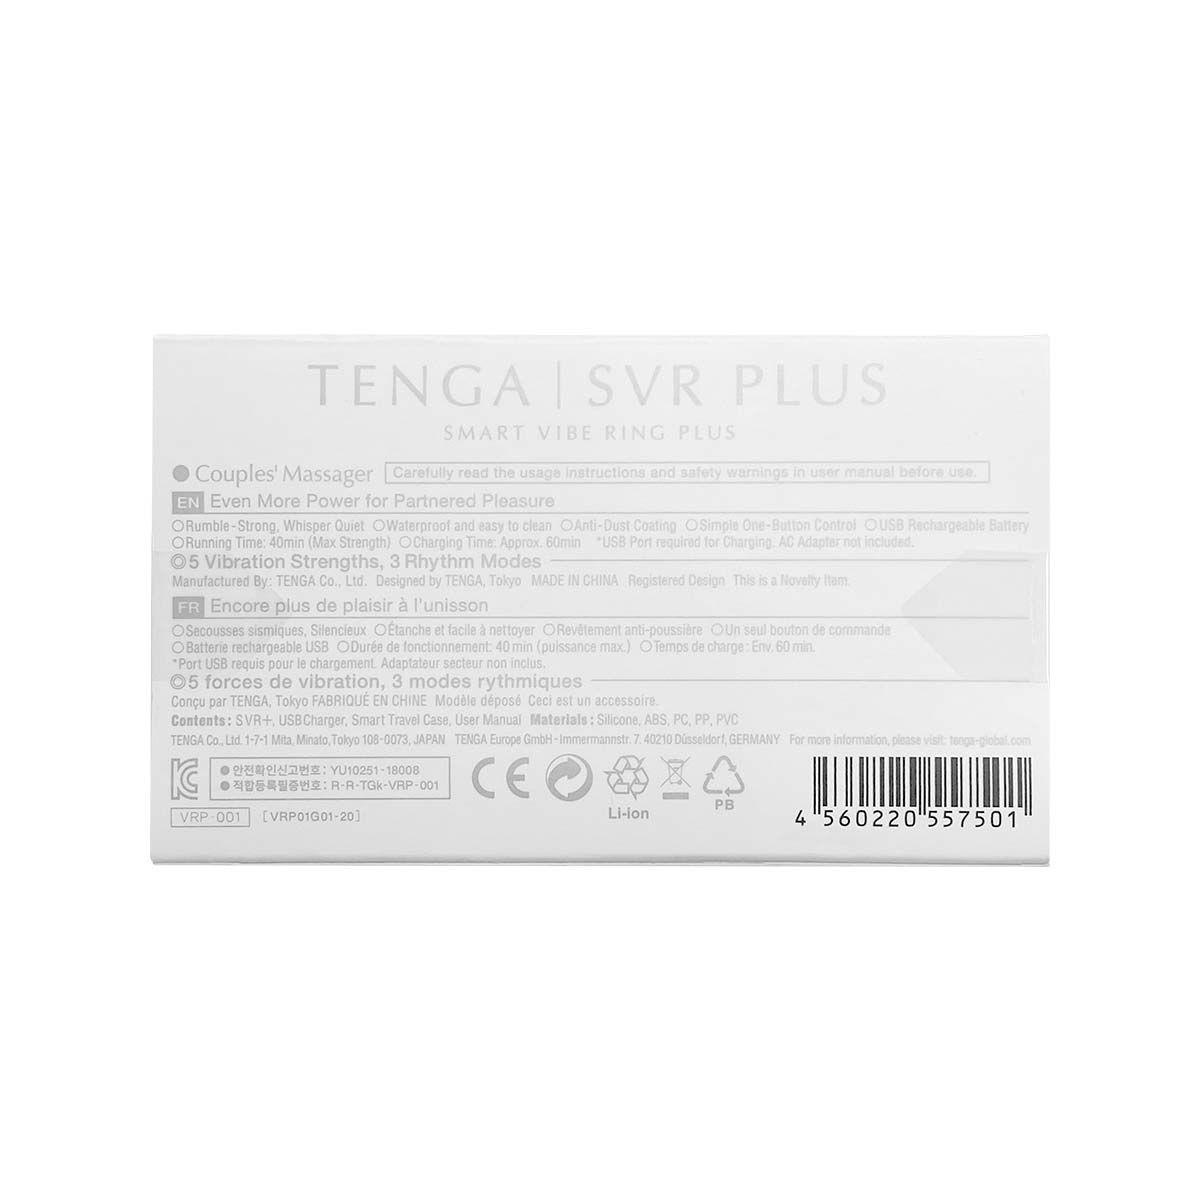 TENGA SVR PLUS - BLACK